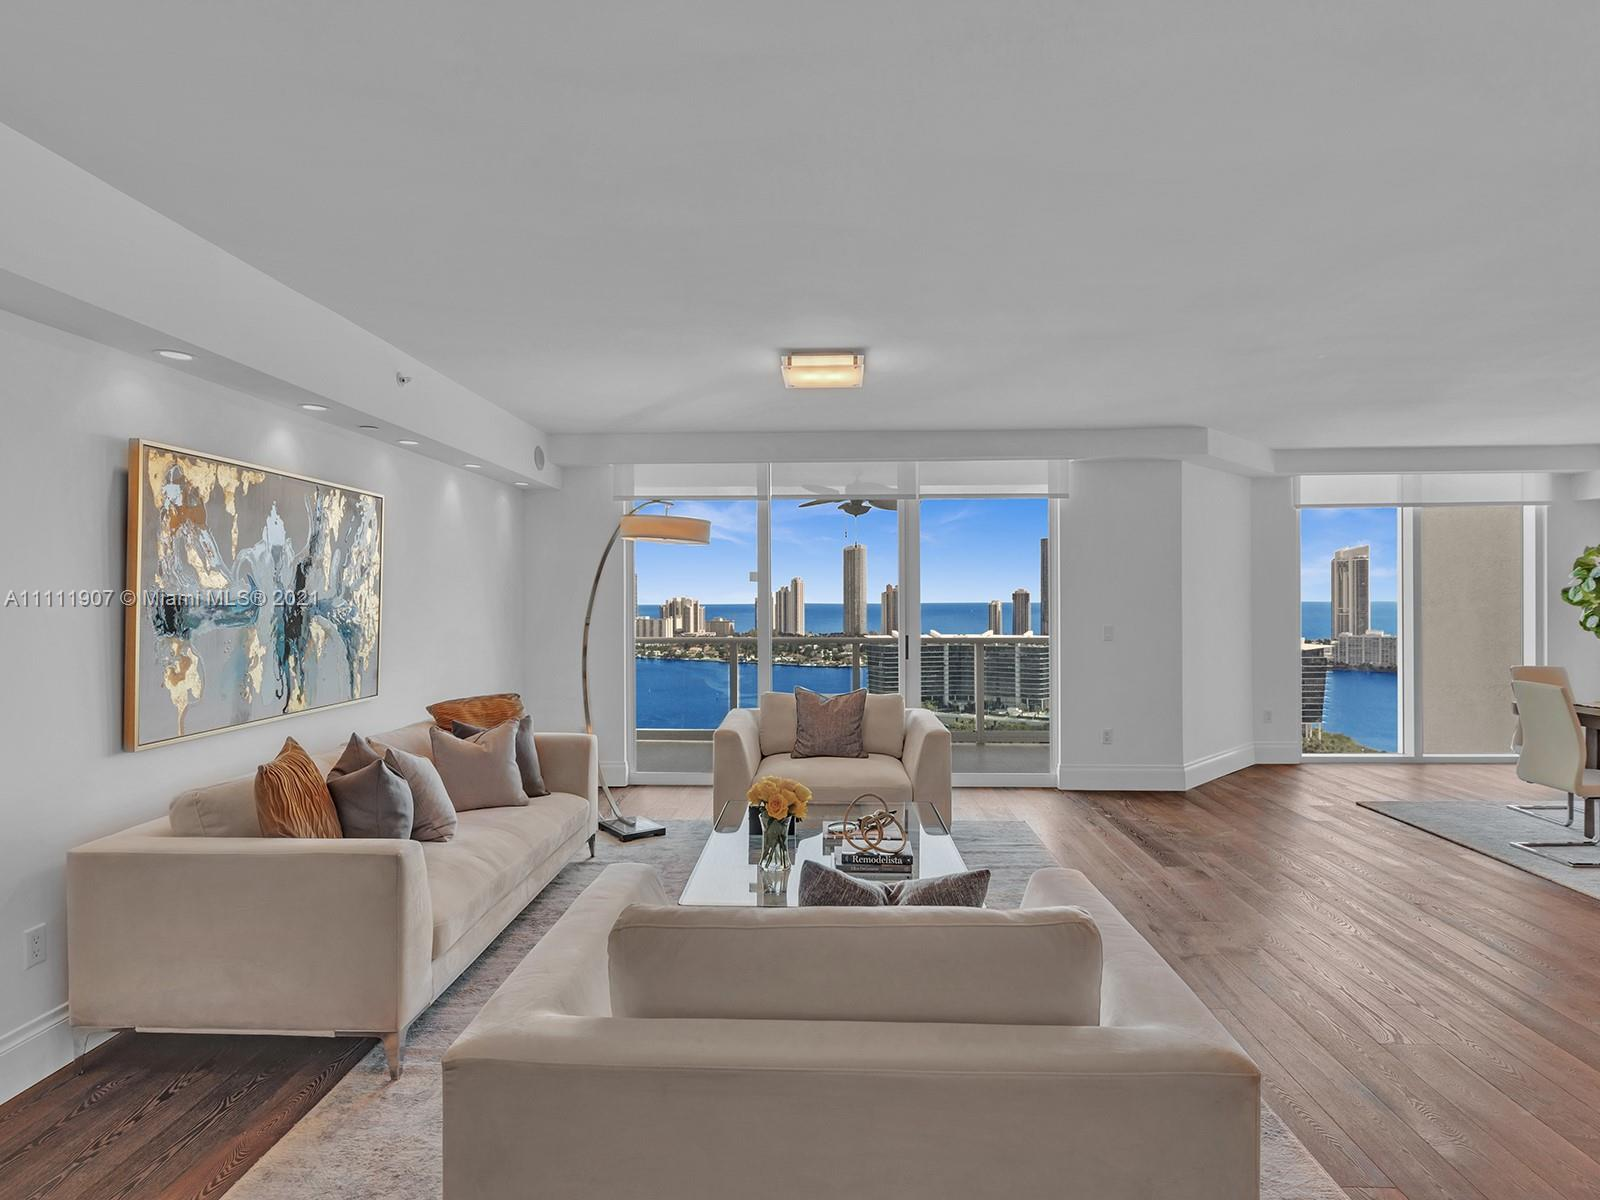 """BREATHTAKING RARELY AVAILABLE STUNNING """"TOWER SUITE"""" 3464 SF FEATURES 4 BEDROOM/4.5 BATH + BONUS MED"""